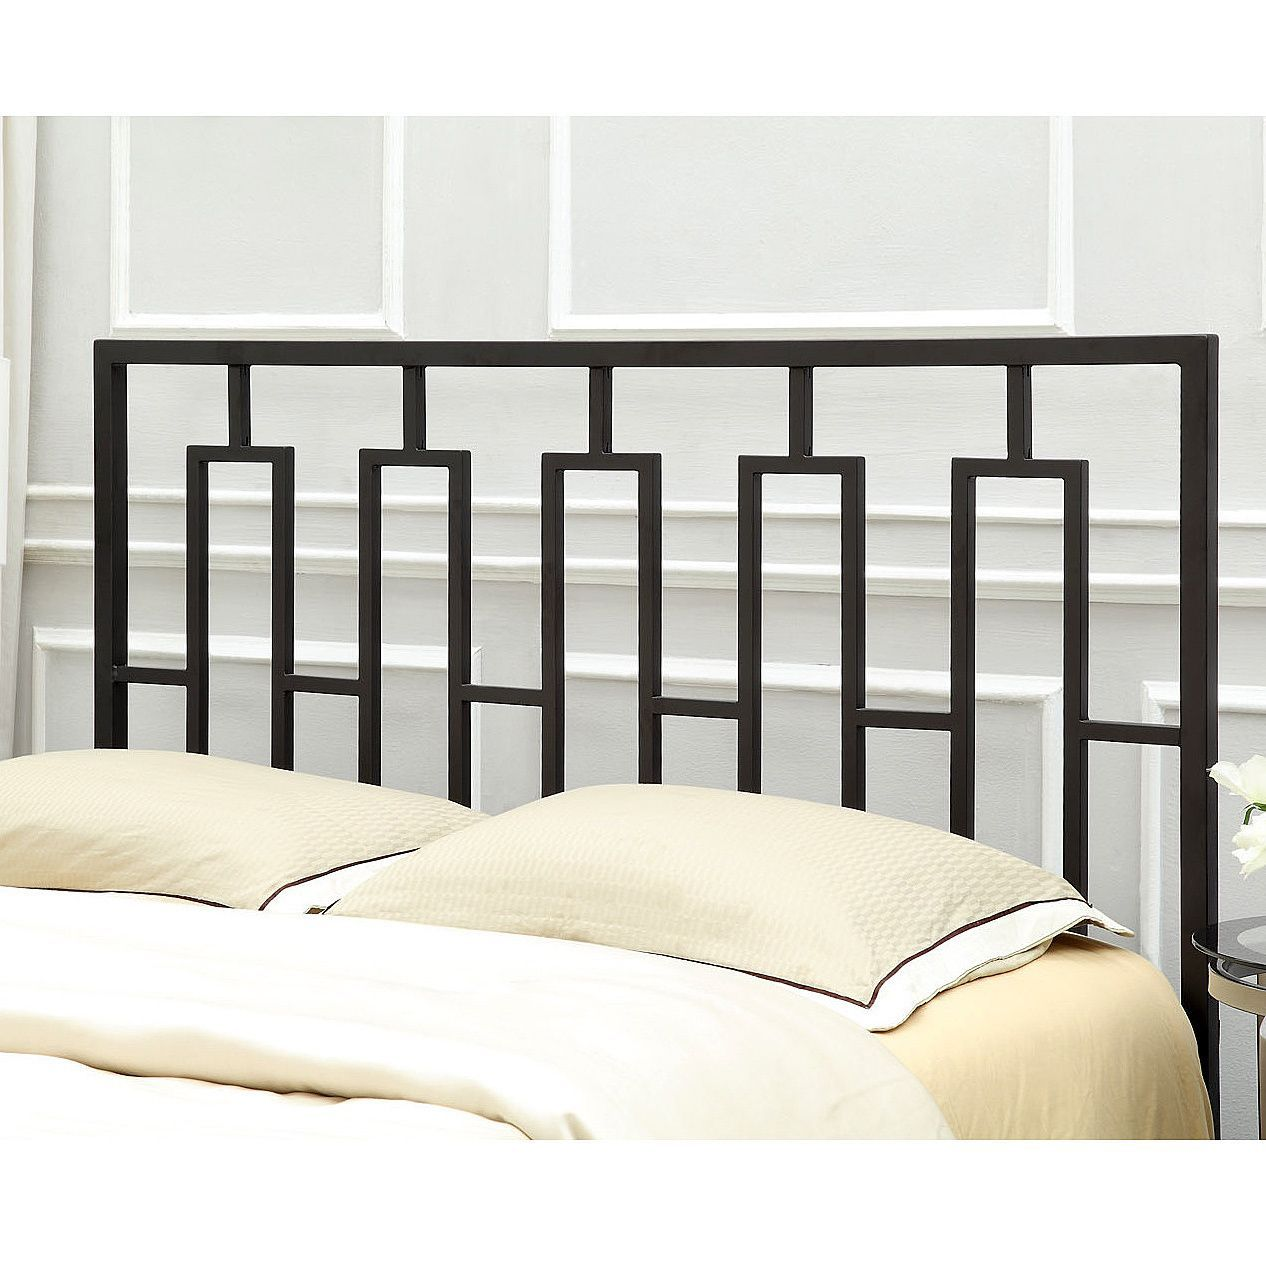 Monarch Satin Black Queen/ Full-Size Headboard/ Footboard (Queen/Full)